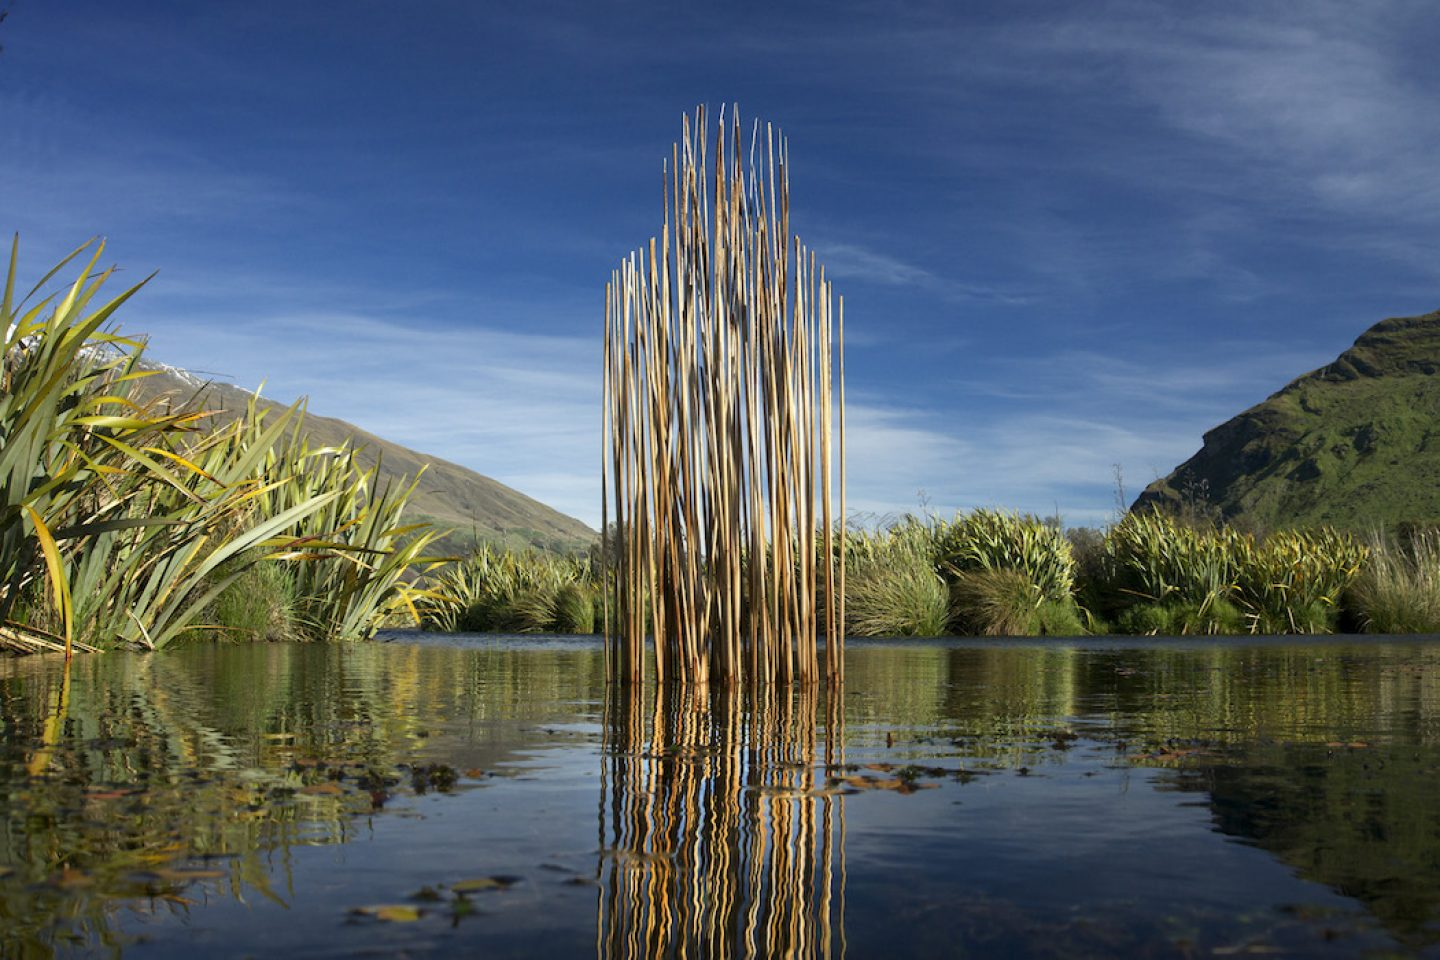 martinhill_art_ Wetland Guardian